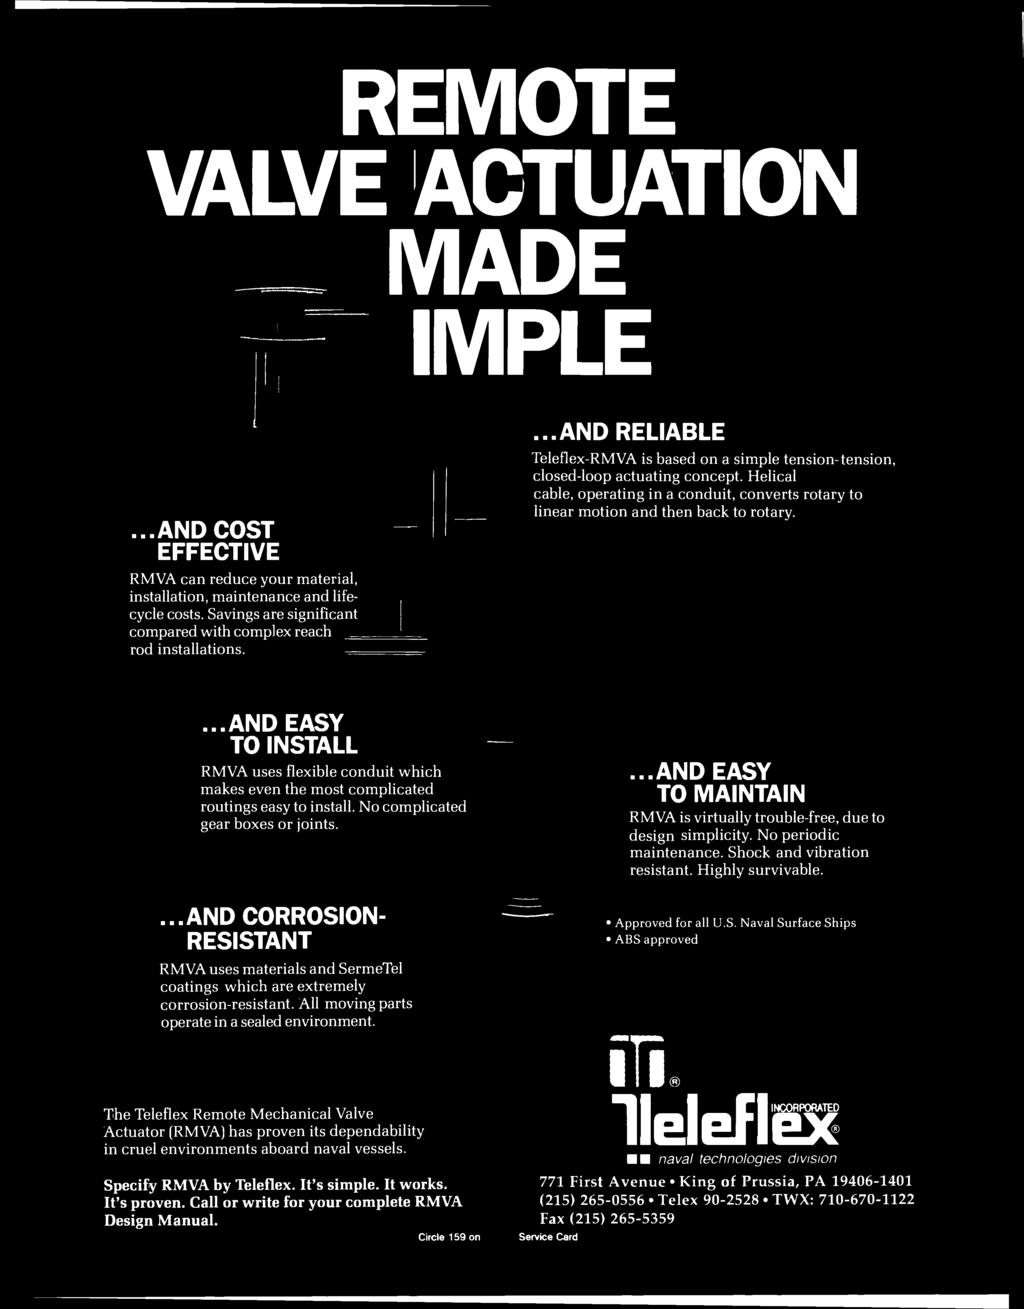 REMOTE VALVE ACTUATION MADE IMPLE...AND COST EFFECTIVE RMVA can reduce your material, installation, maintenance and lifecycle costs.